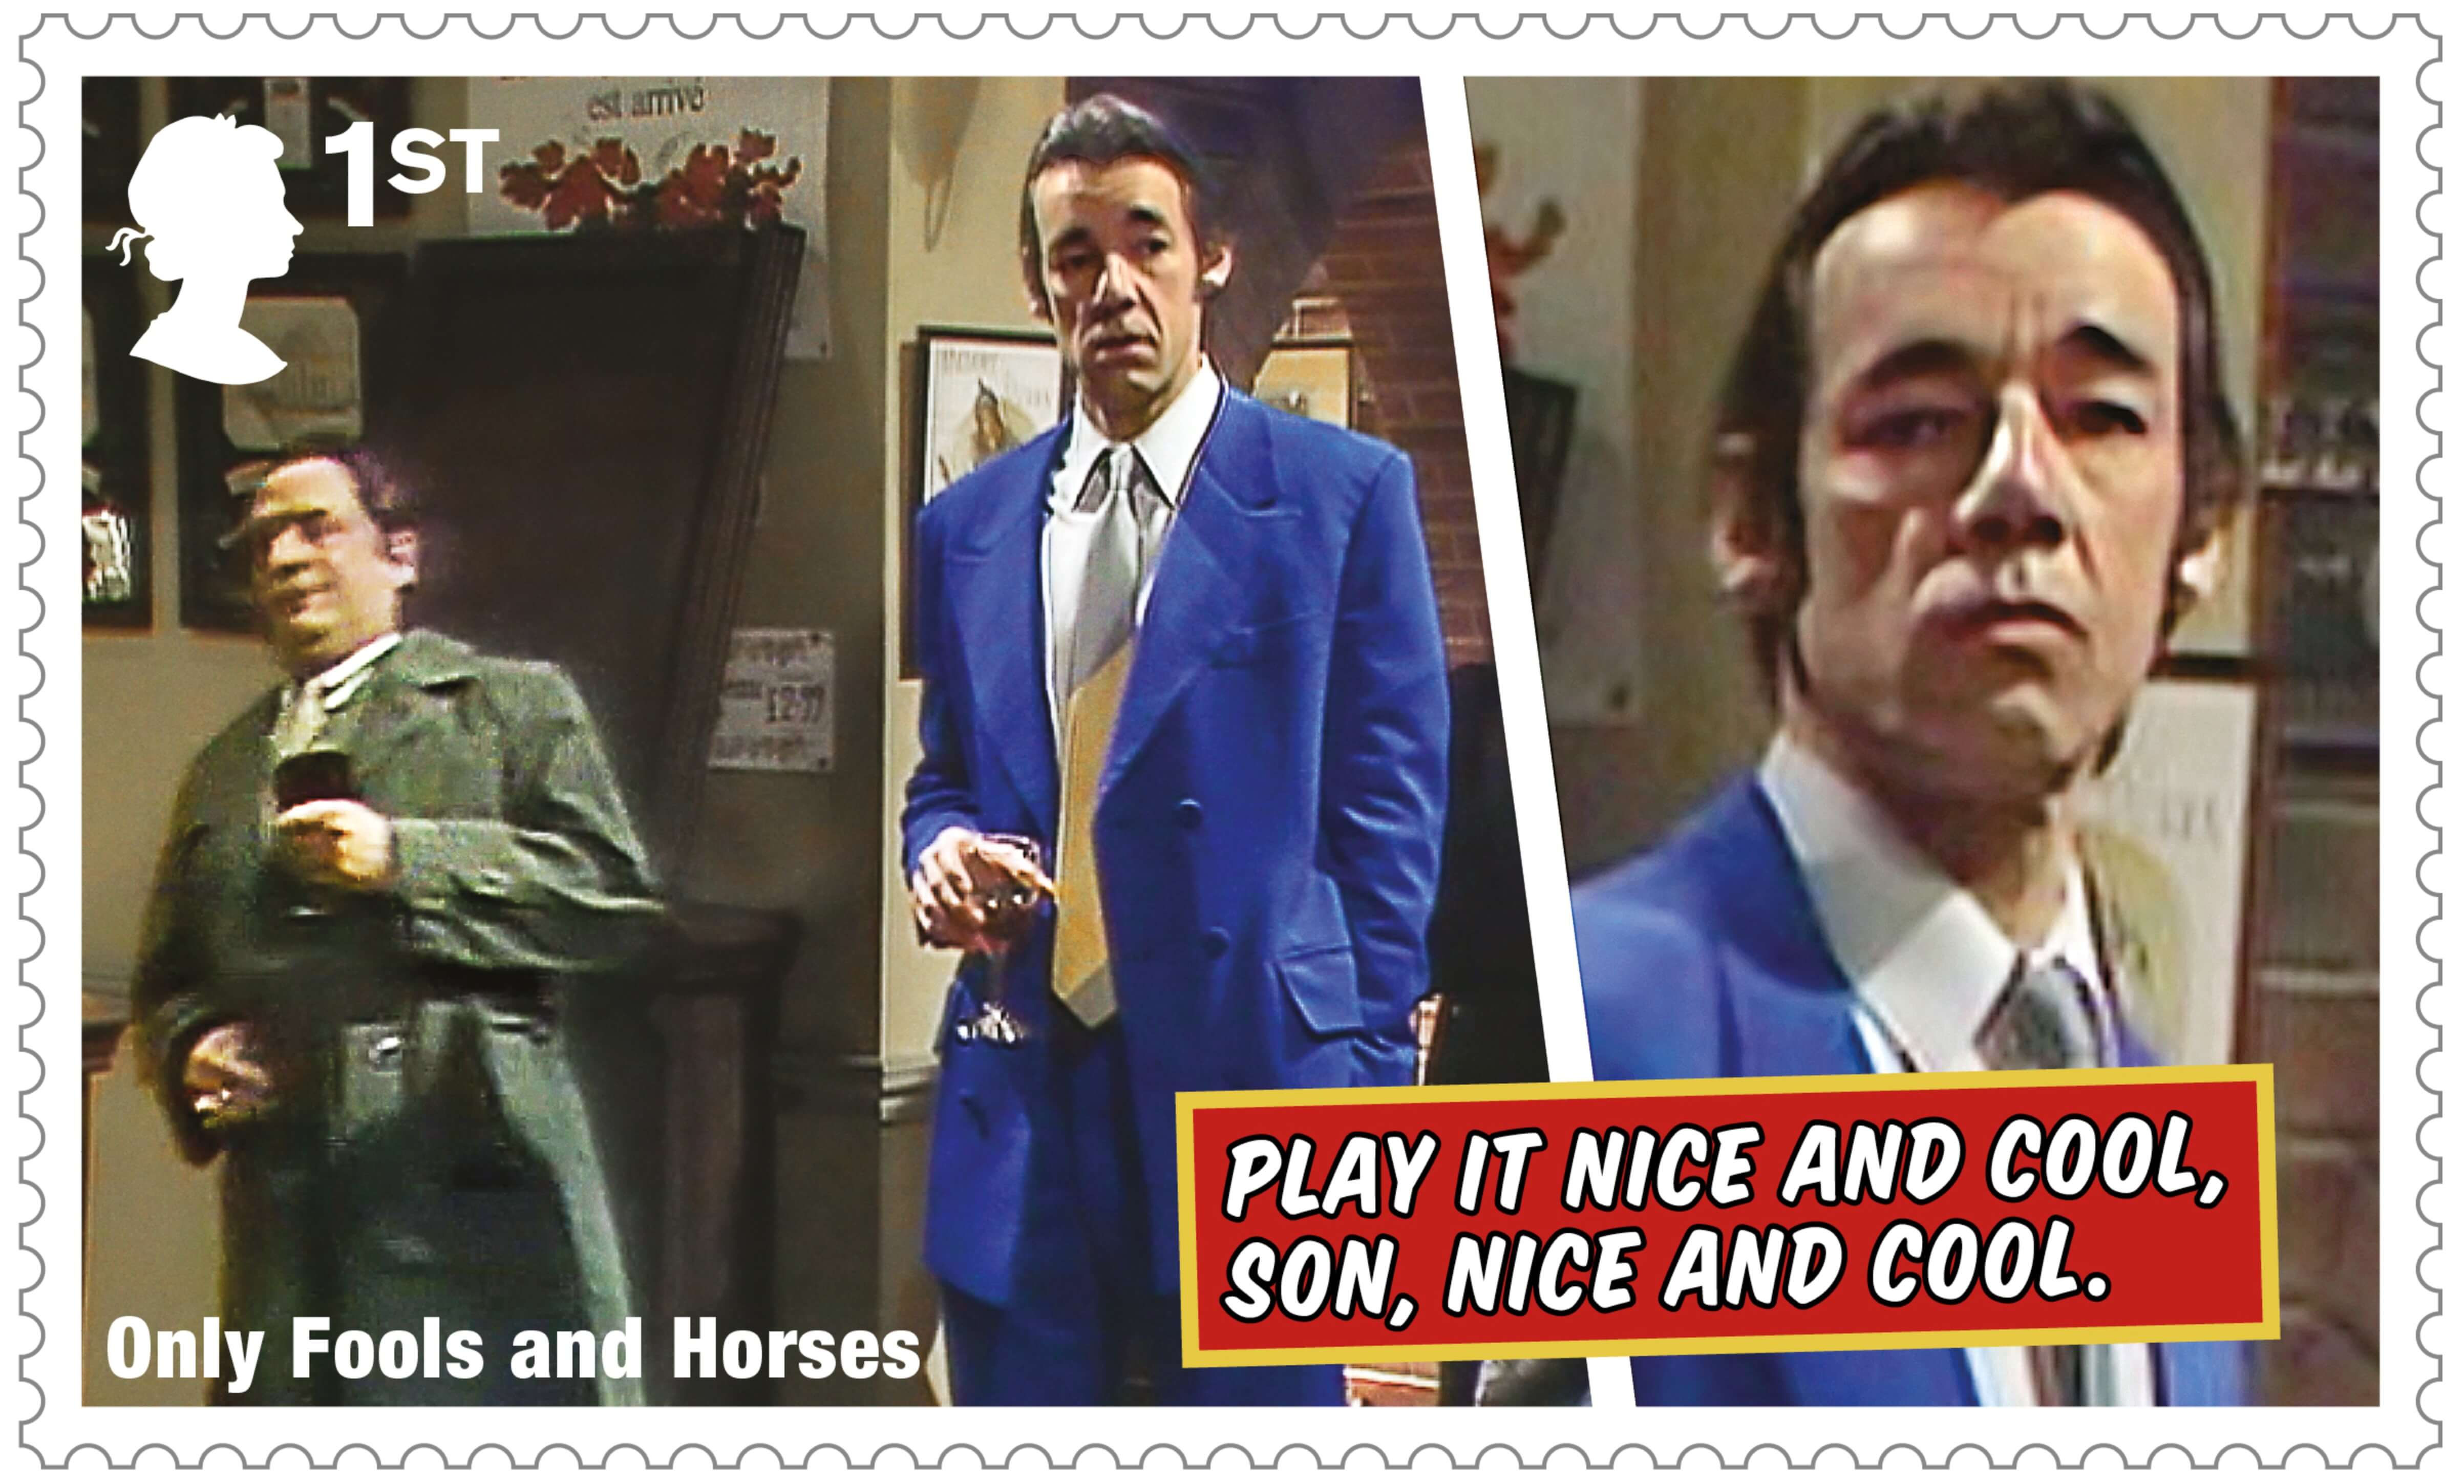 Only Fools and Horses - Yuppy Love